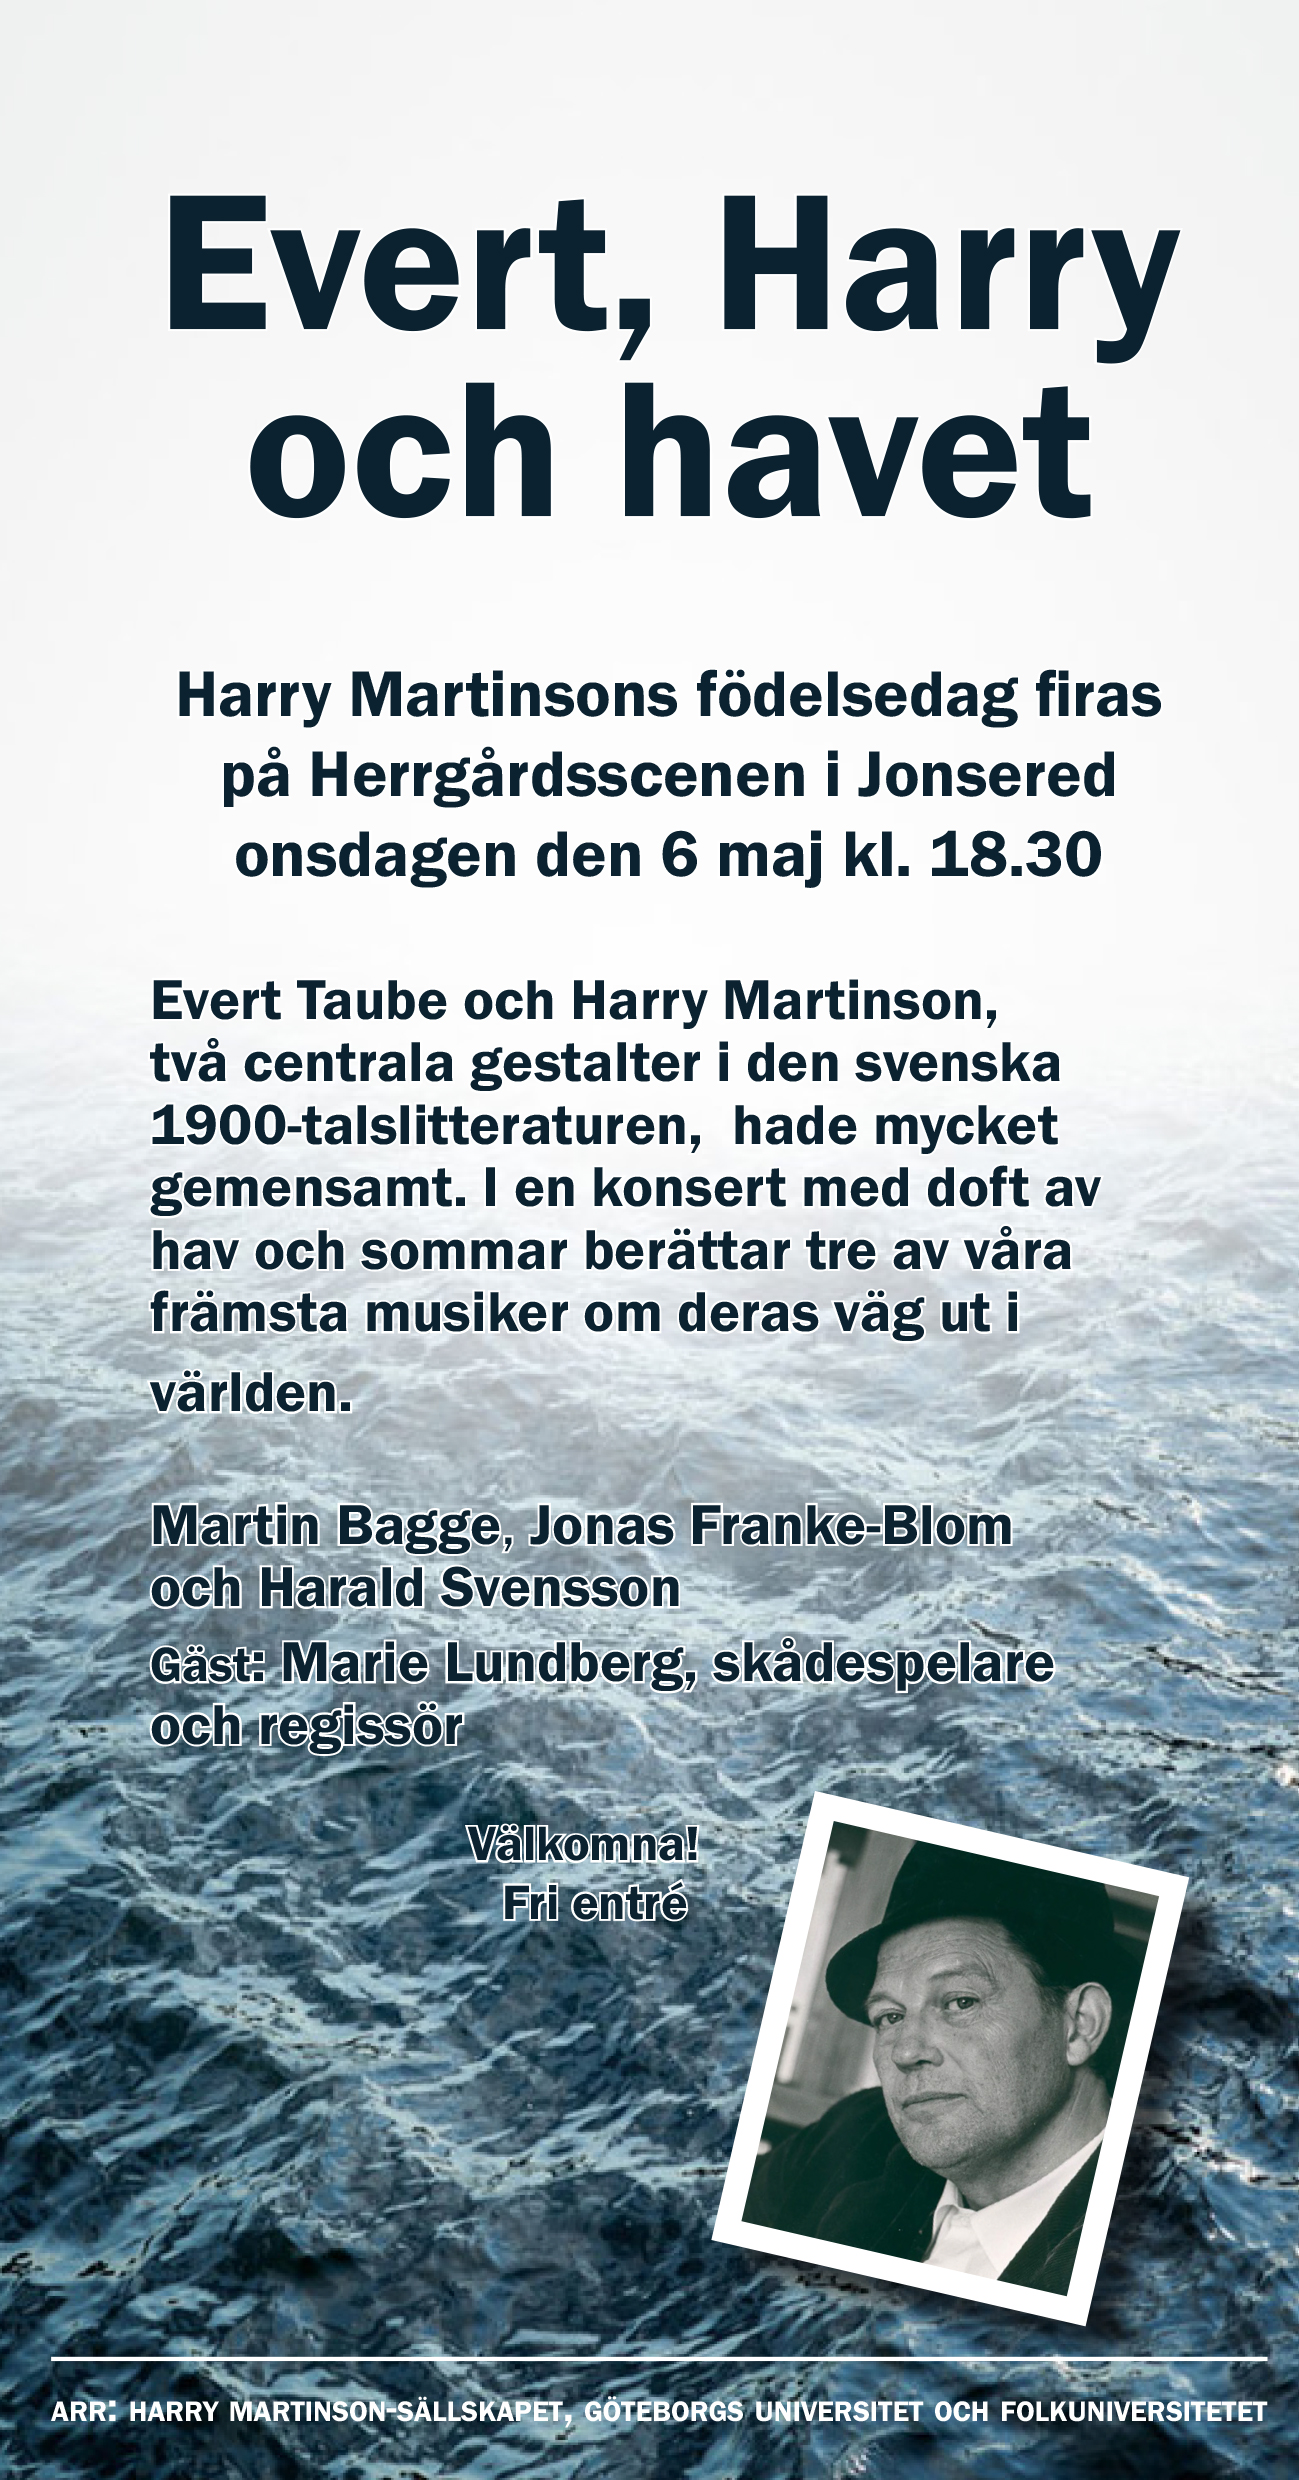 Evert,-Harry-och-havet-affisch